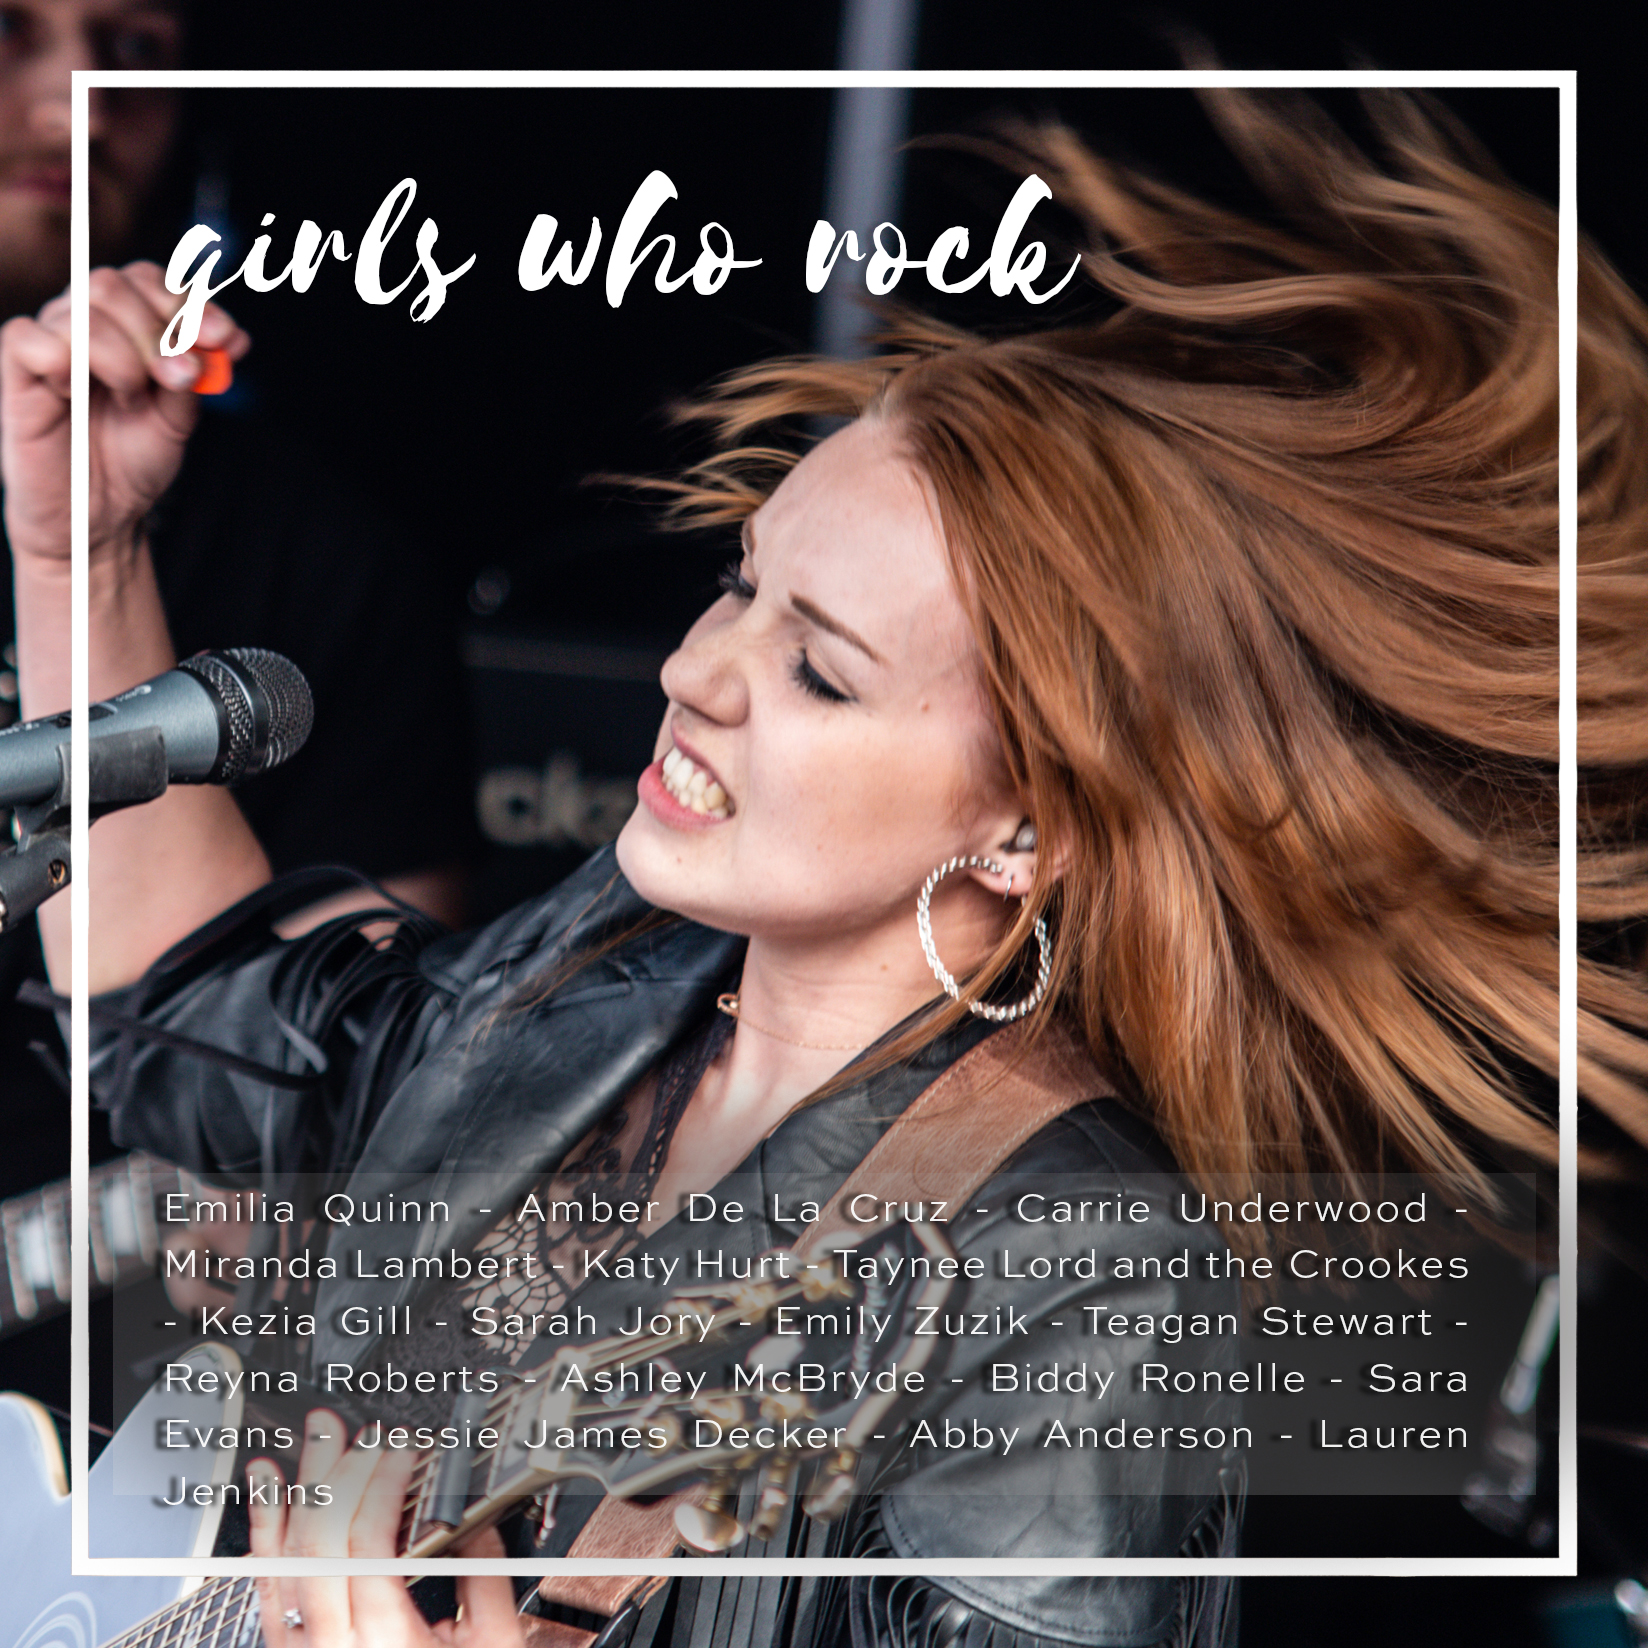 Weekly Playlist #33: girls who rock